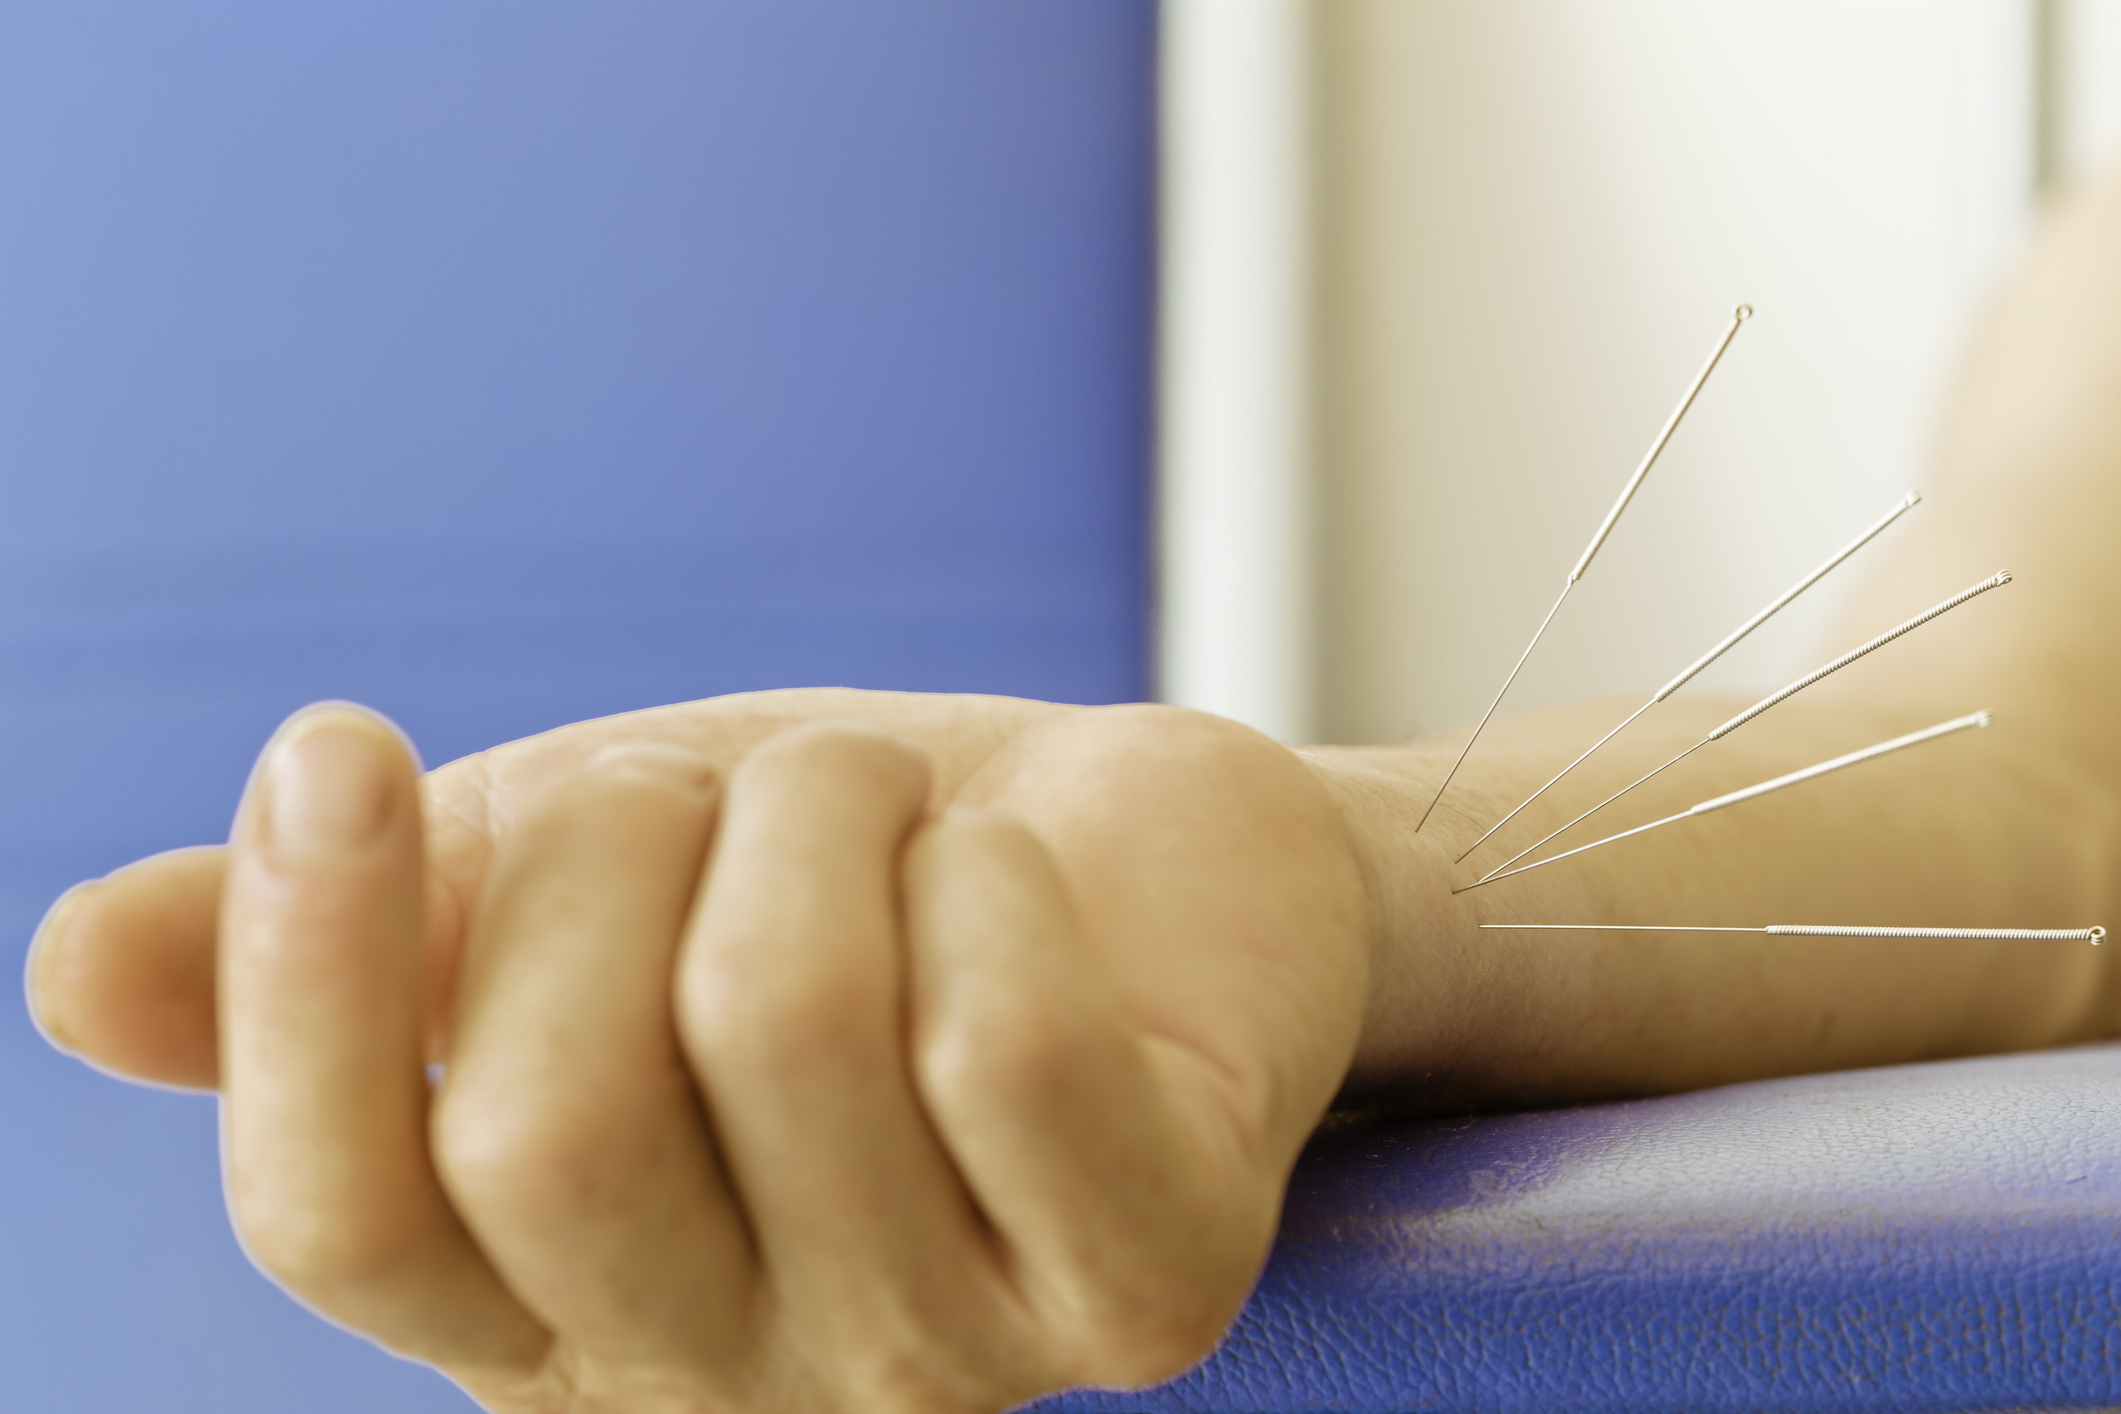 Carpal tunnel syndrome (CTS) eased with electroacupuncture